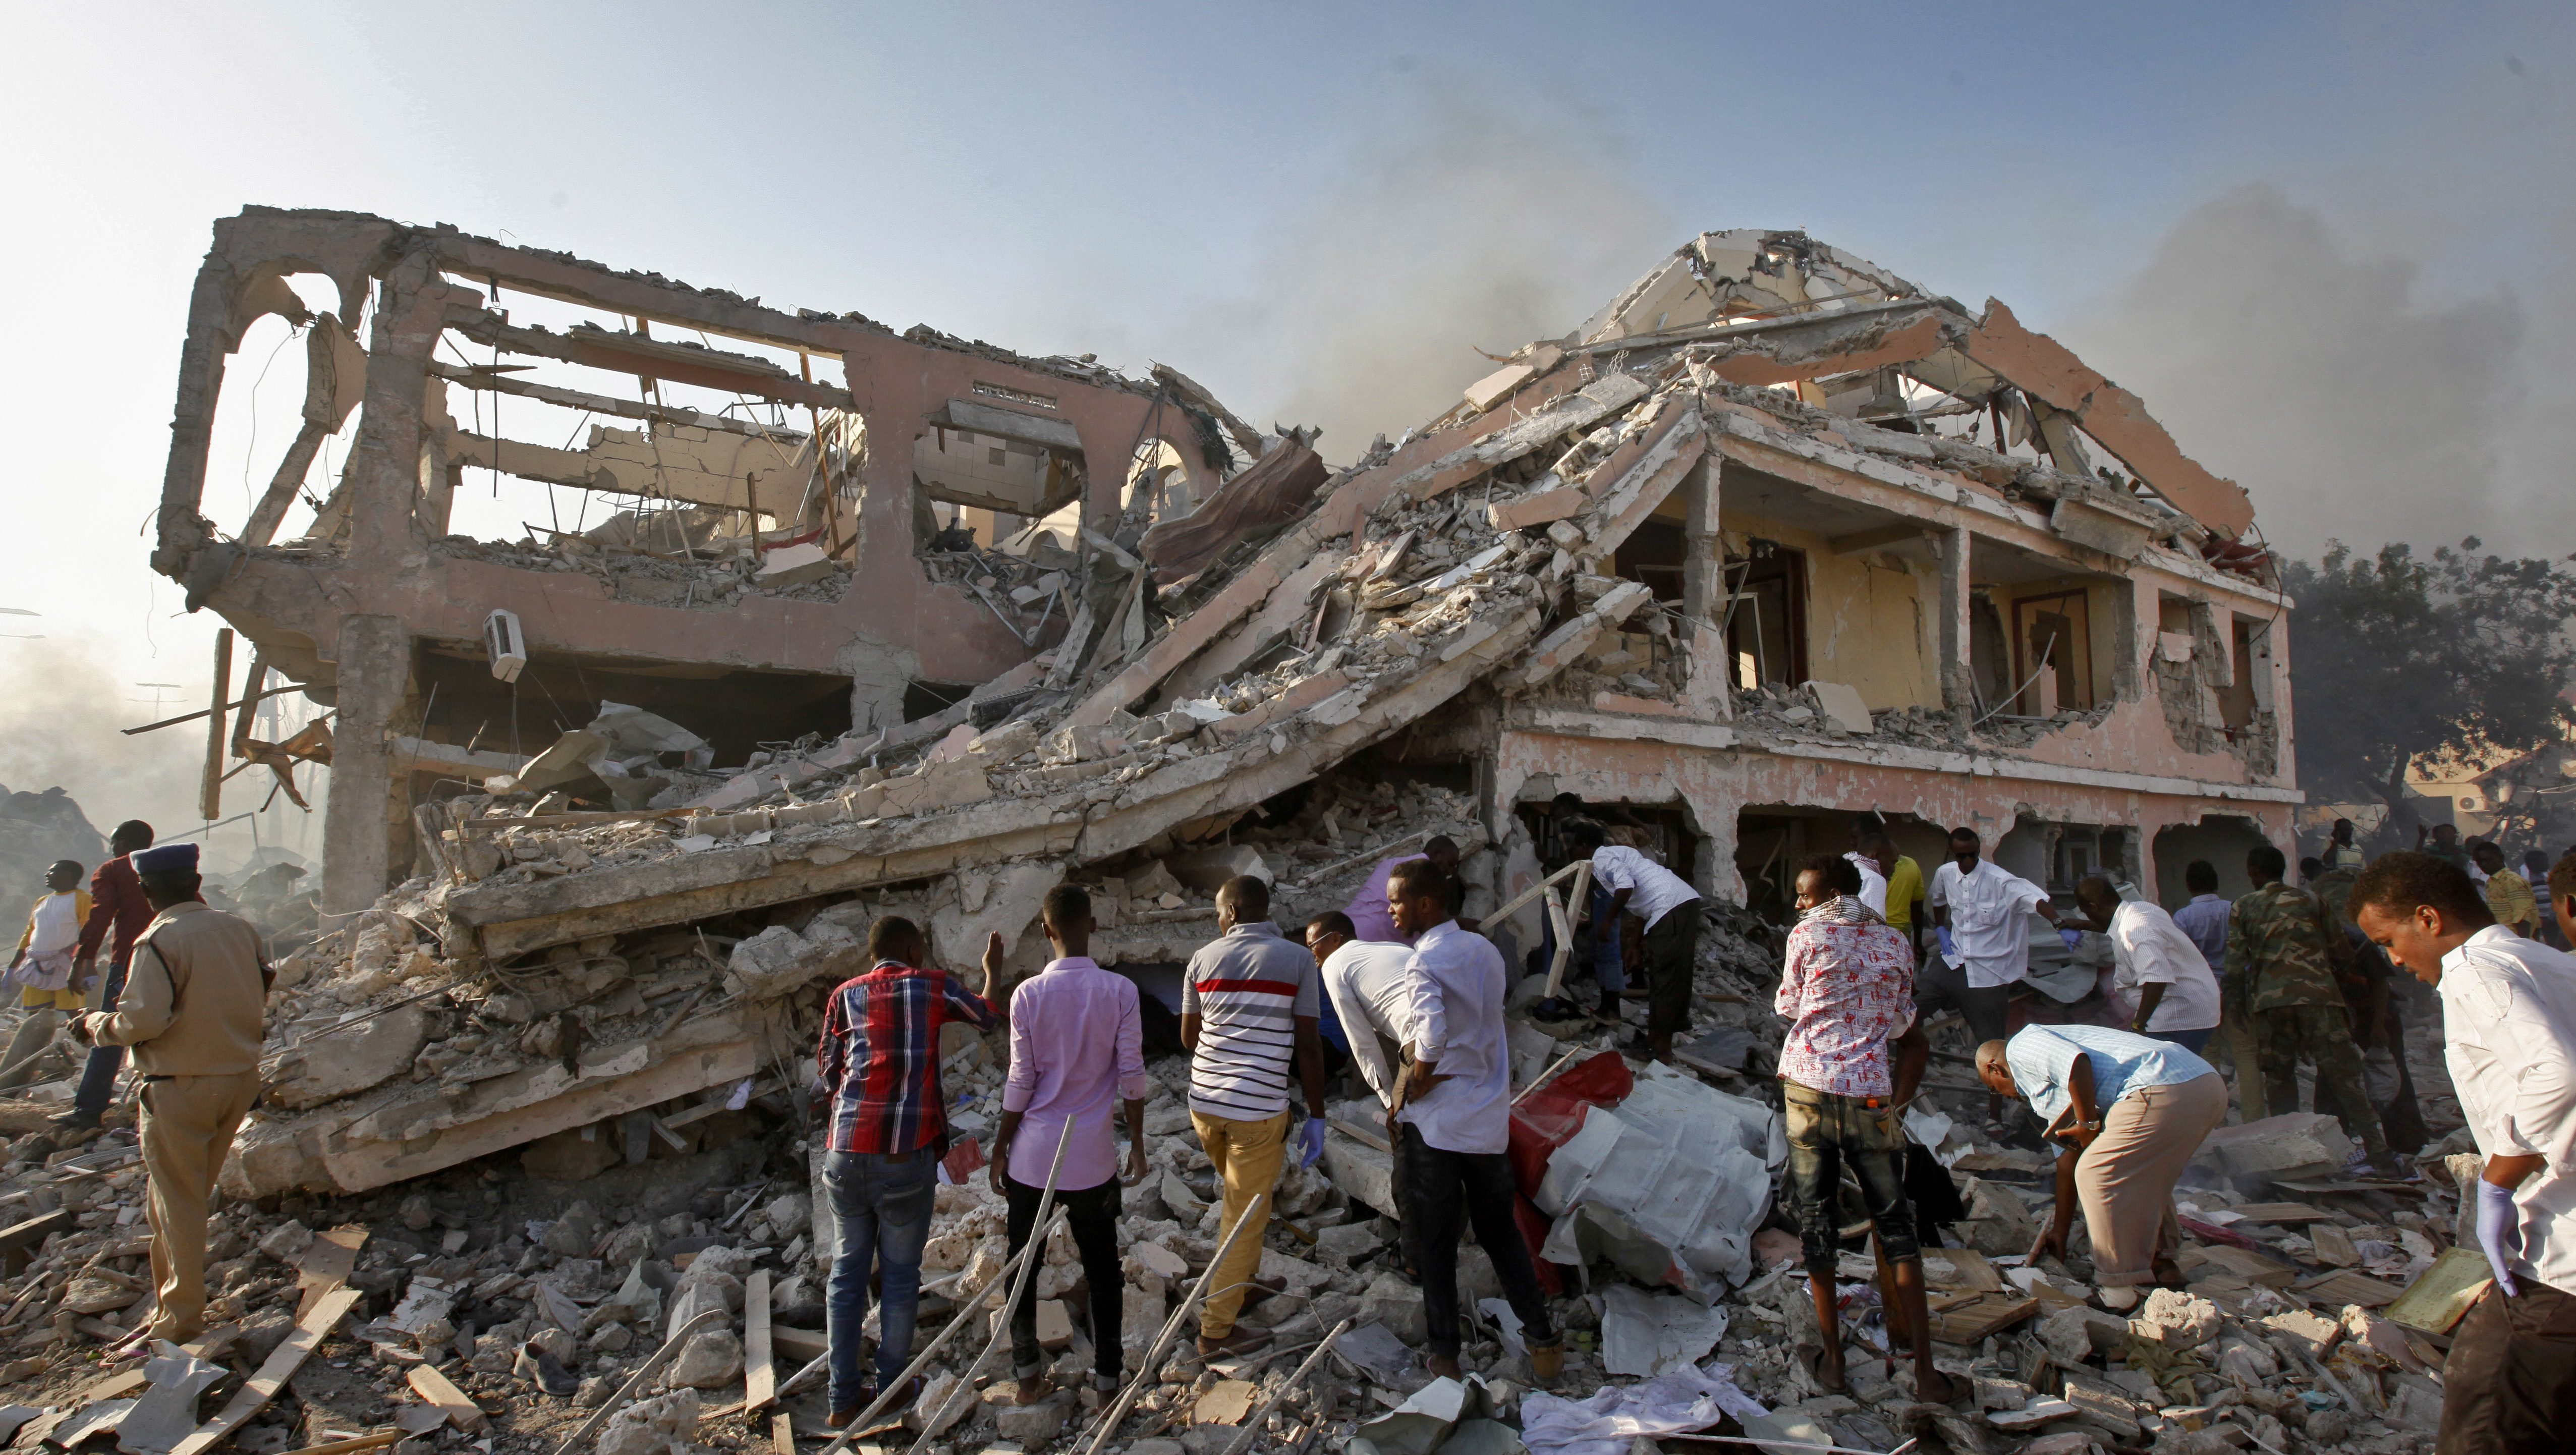 Somalis gather and search for survivors by destroyed buildings at the scene of a blast in the capital Mogadishu, Somalia Saturday, Oct. 14, 2017. A huge explosion from a truck bomb has killed at least 20 people in Somalia's capital, police said Saturday, as shaken residents called it the most powerful blast they'd heard in years.